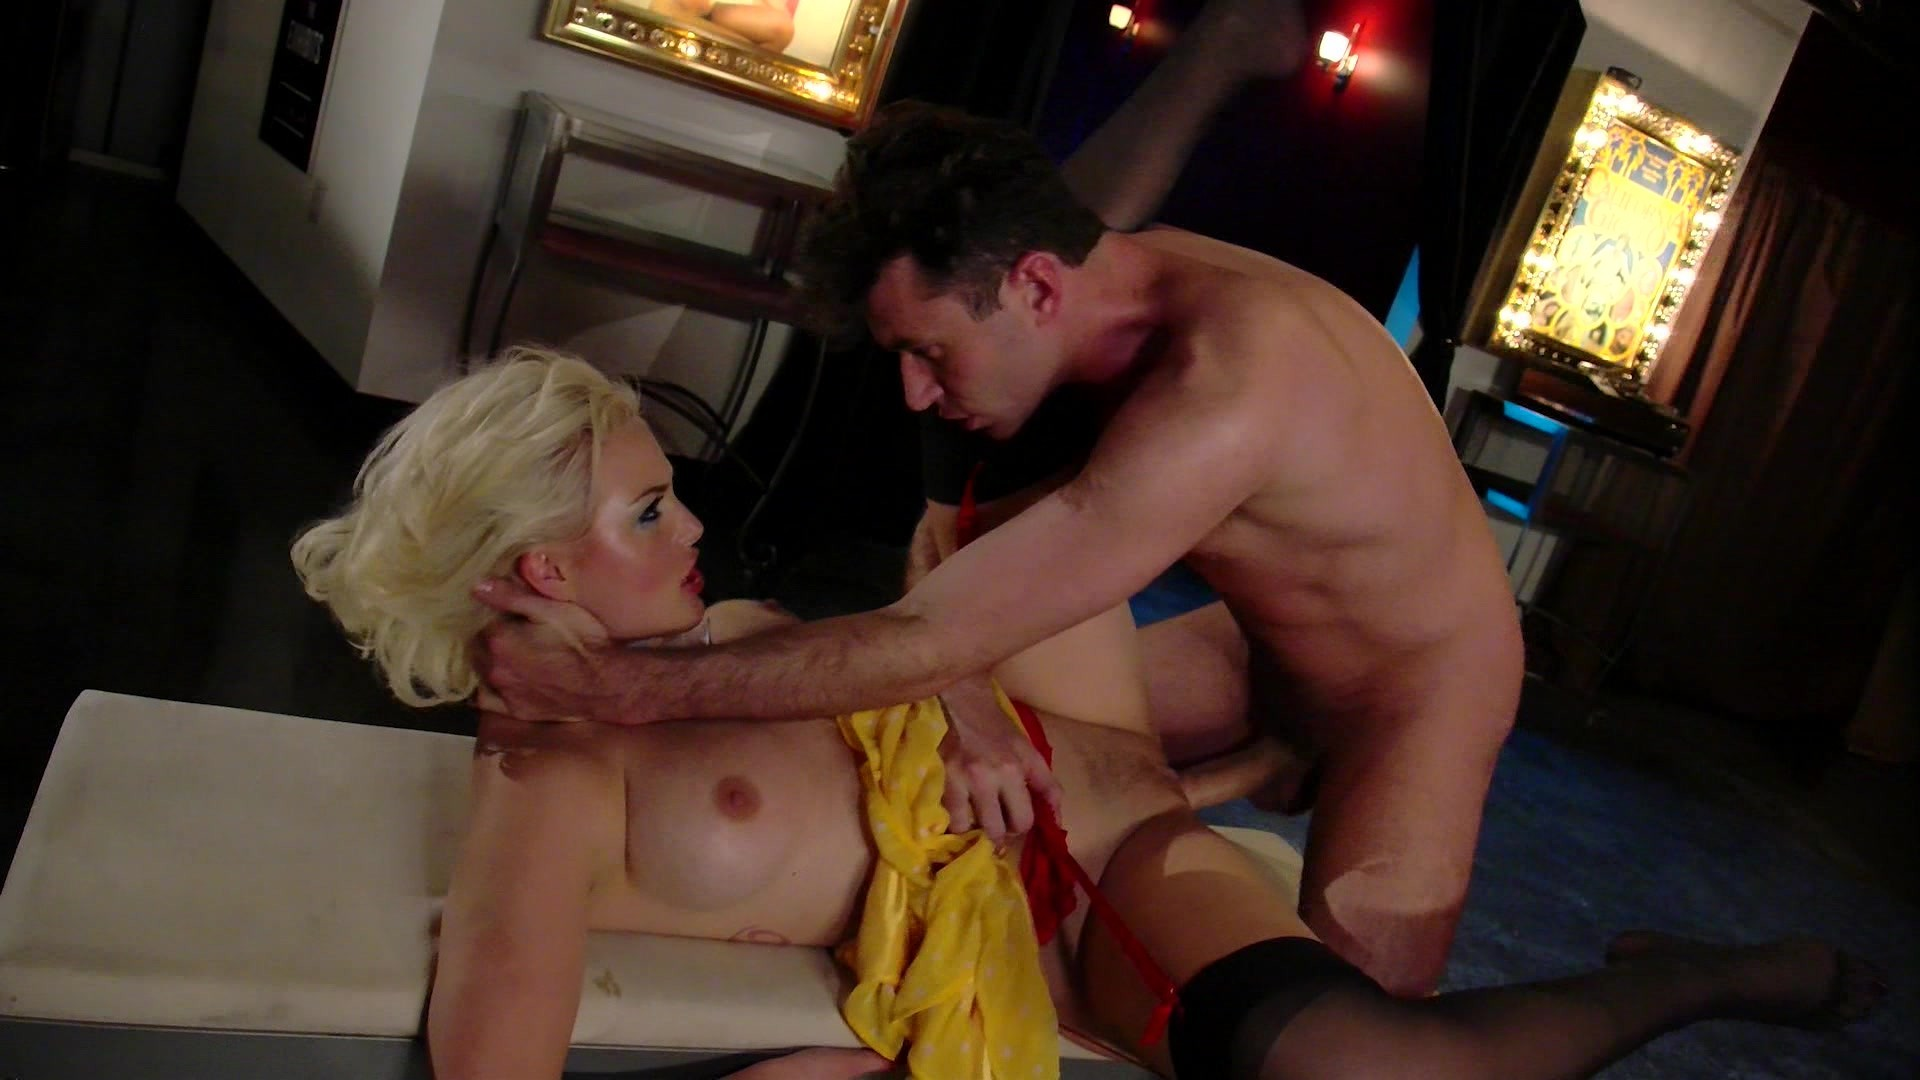 Hot Blonde Jenna Ivory Plays Legendary Beauty Seka Who Gets Fucked by Night Secu... Starring: James Deen Jenna Ivory